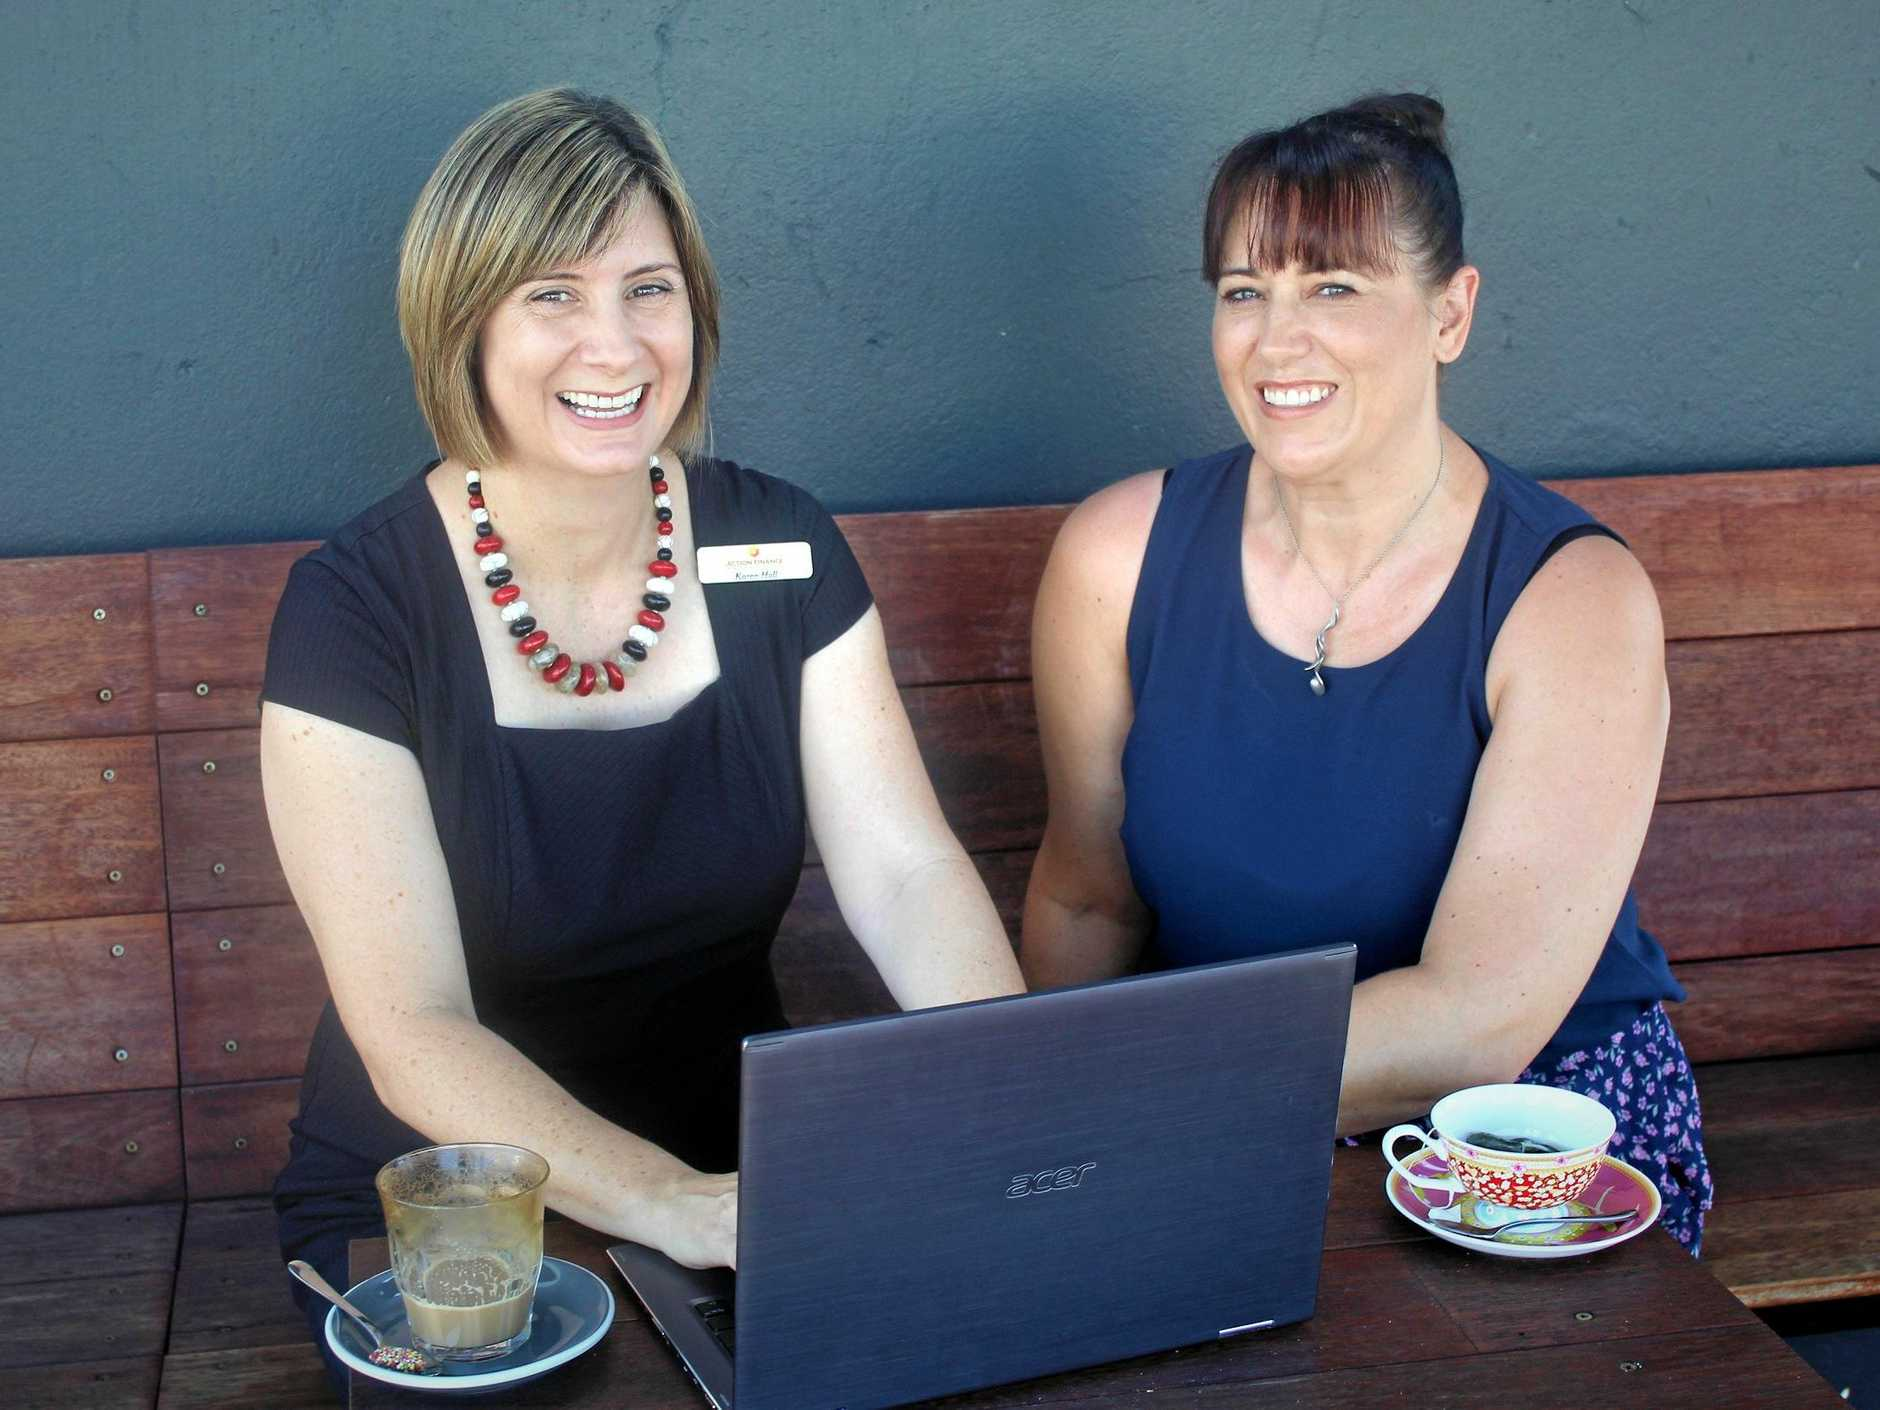 WOMEN IN FINANCE: Action Finance owner Karen Fall and Amanda Alderson from Dealer Direct Finance work from home to meet the needs of their customers.